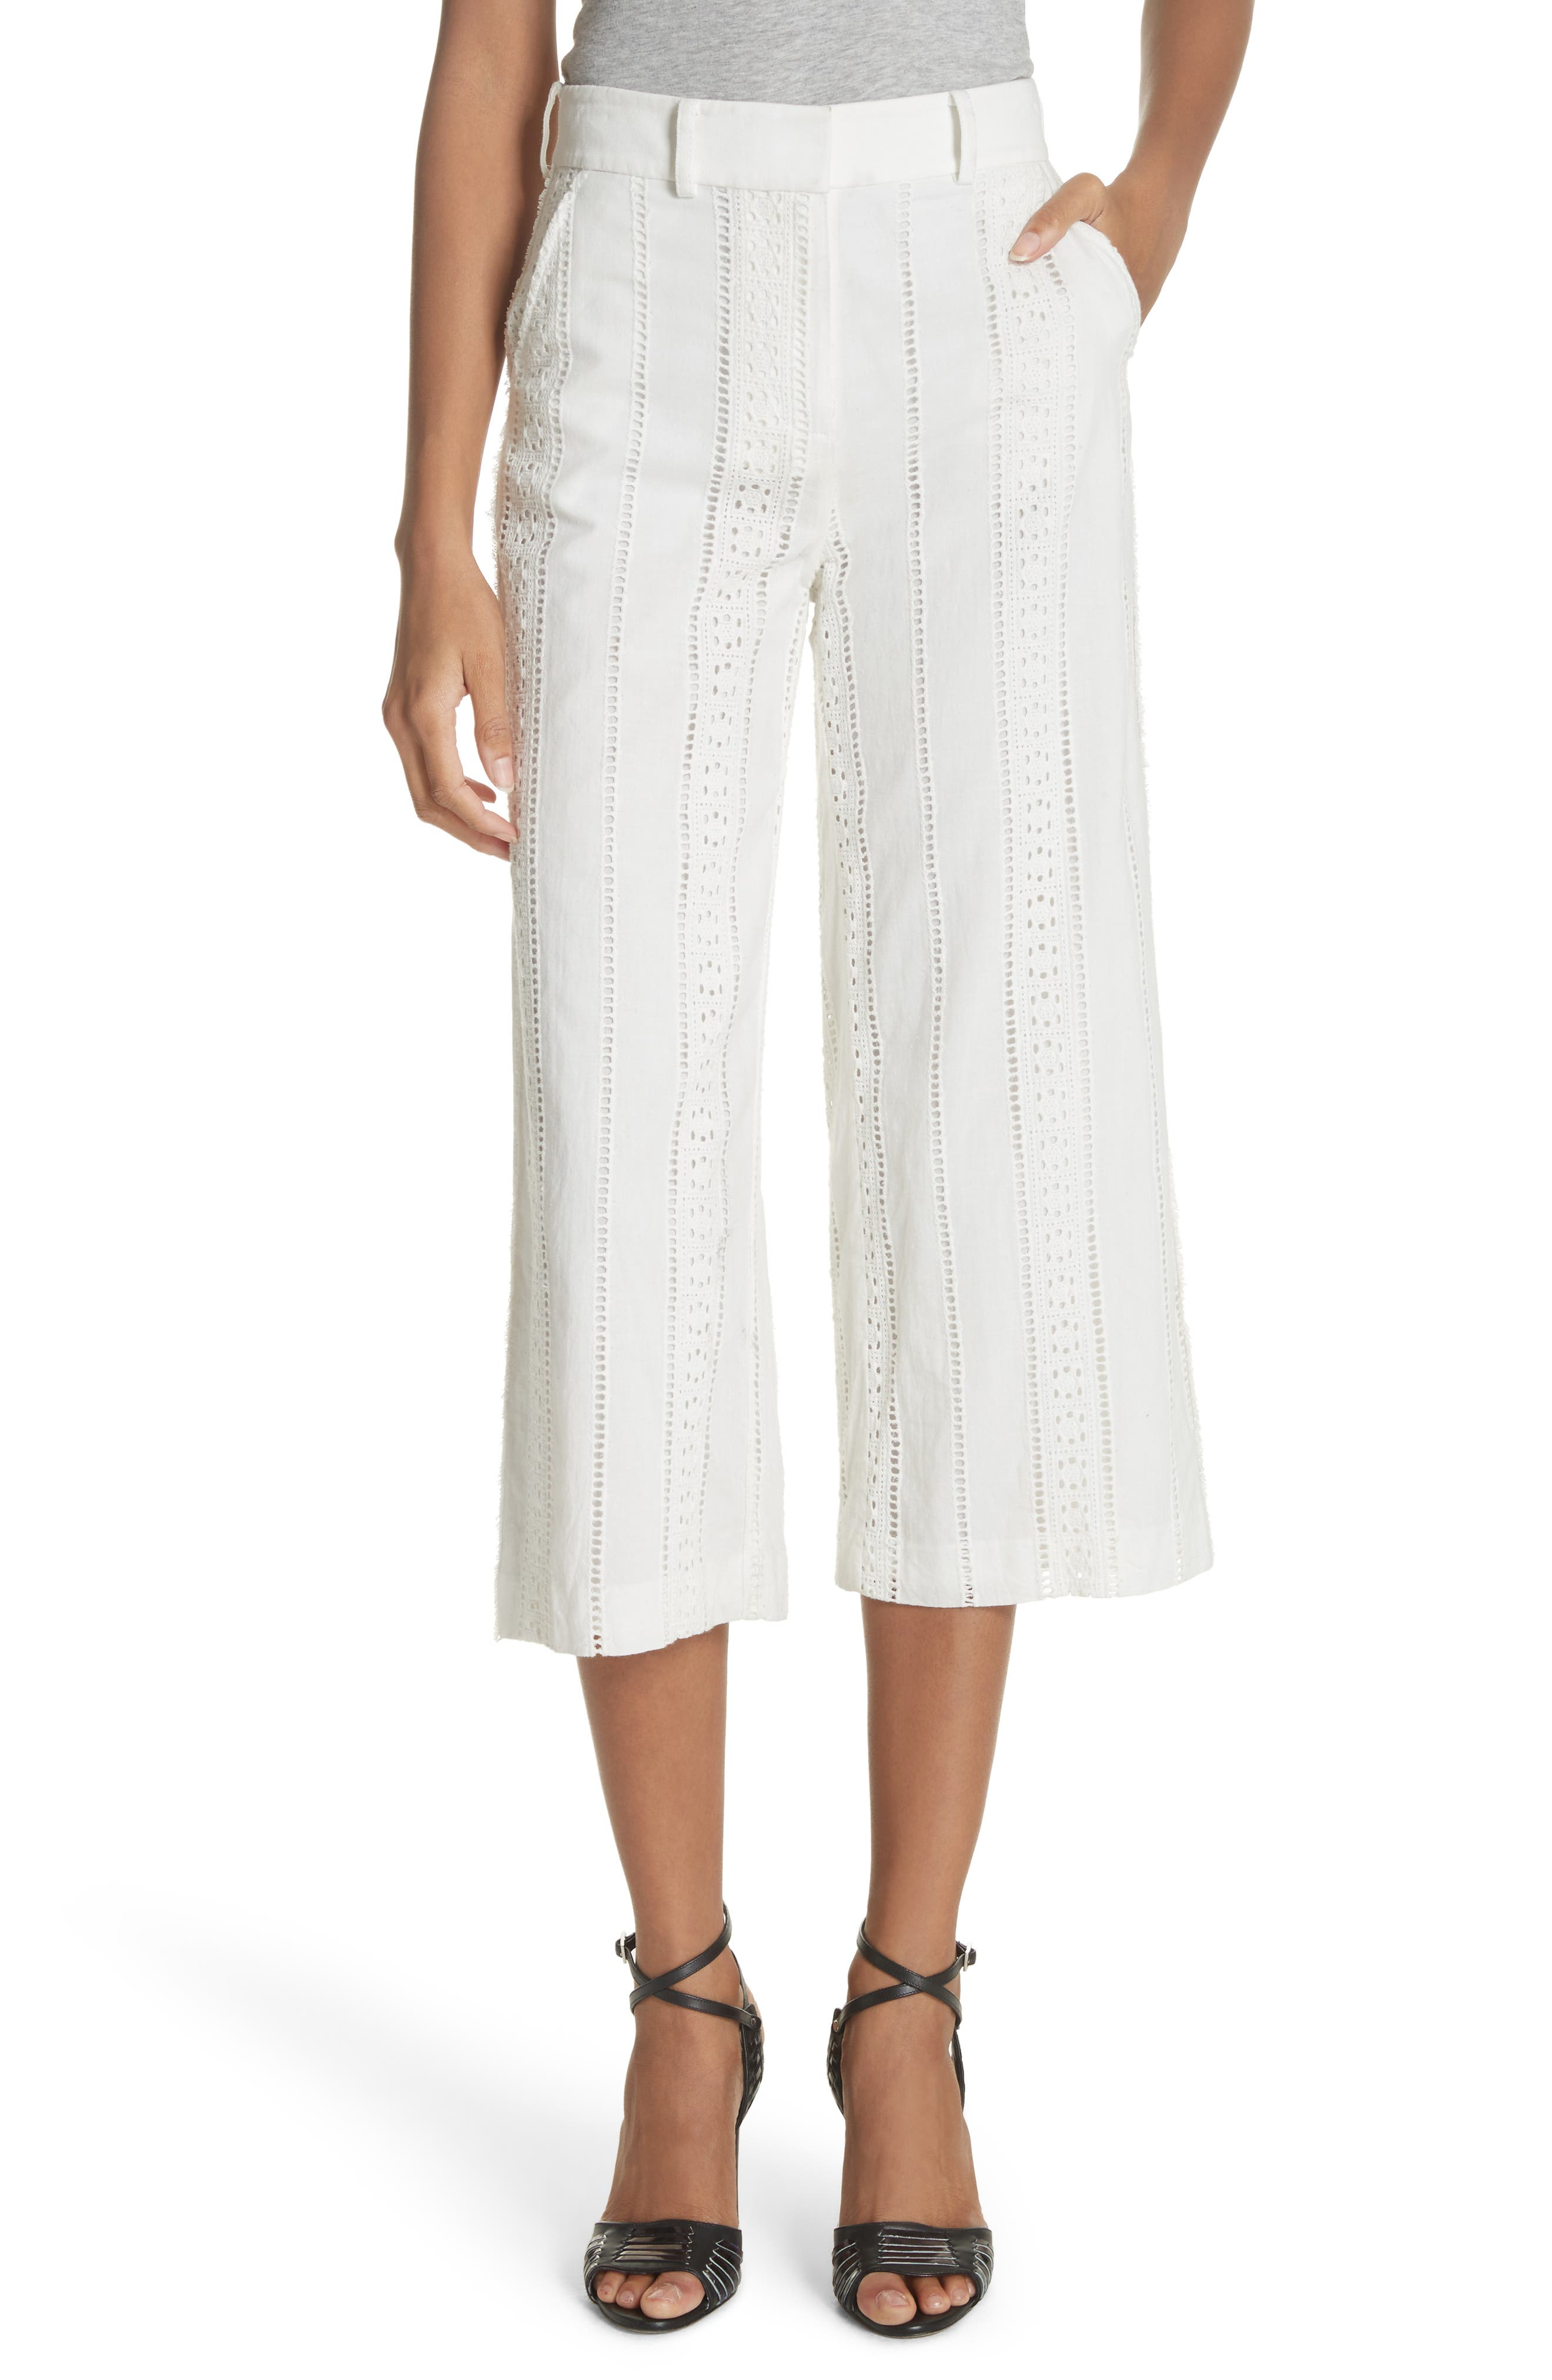 Leta Eyelet Gaucho Pants,                         Main,                         color, White